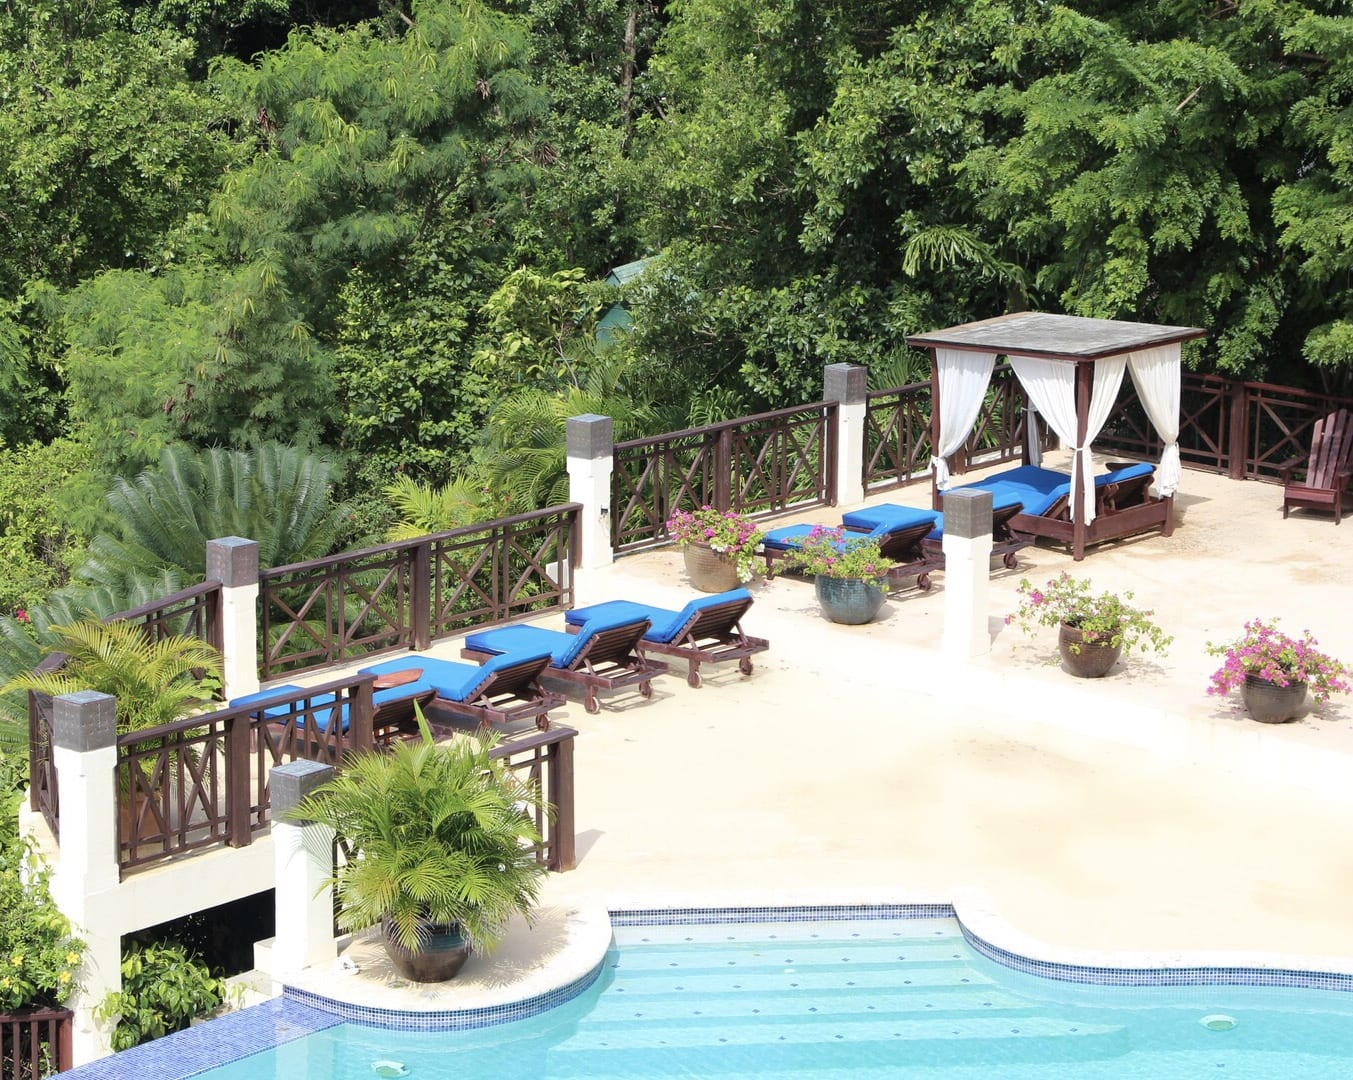 The pool at Calabash Cove St. Lucia